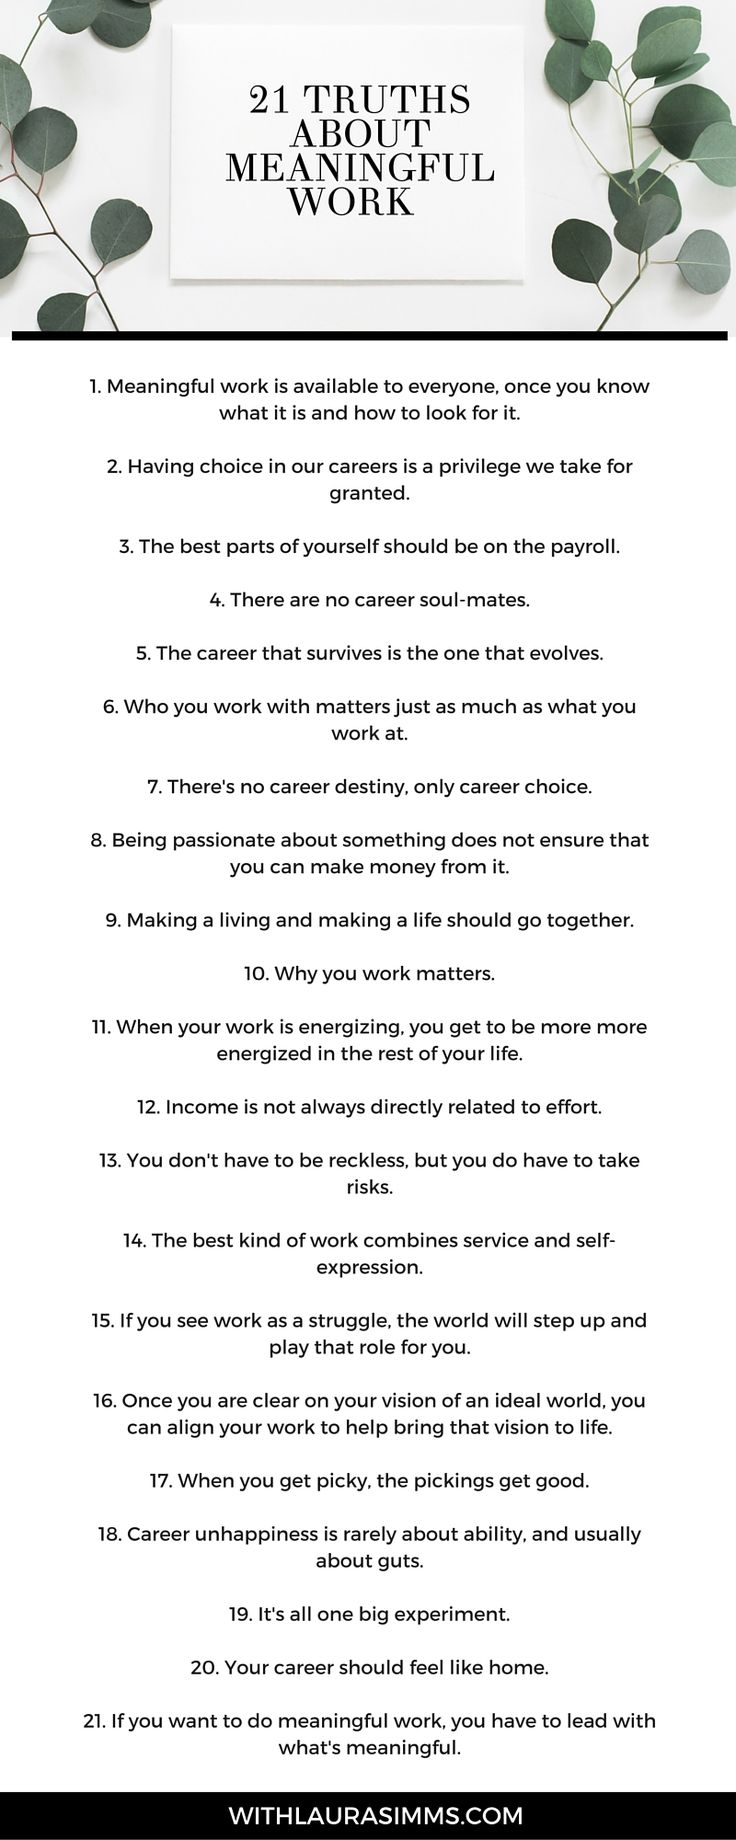 best ideas about career change life purpose 21 truths about meaningful work